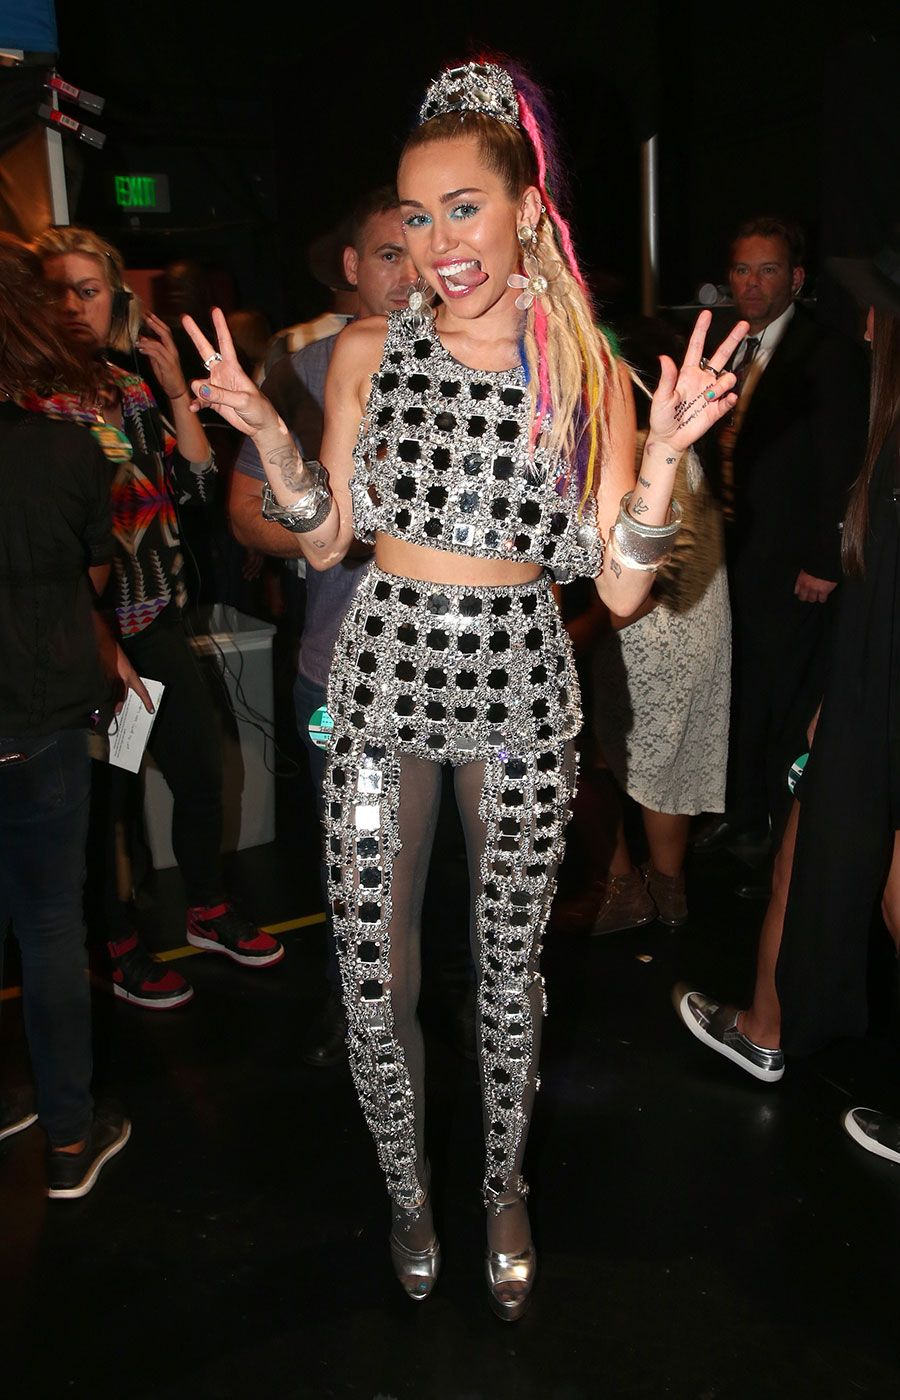 Miley Cyrus S Vmas Outfits Ranked From Bad To Worse